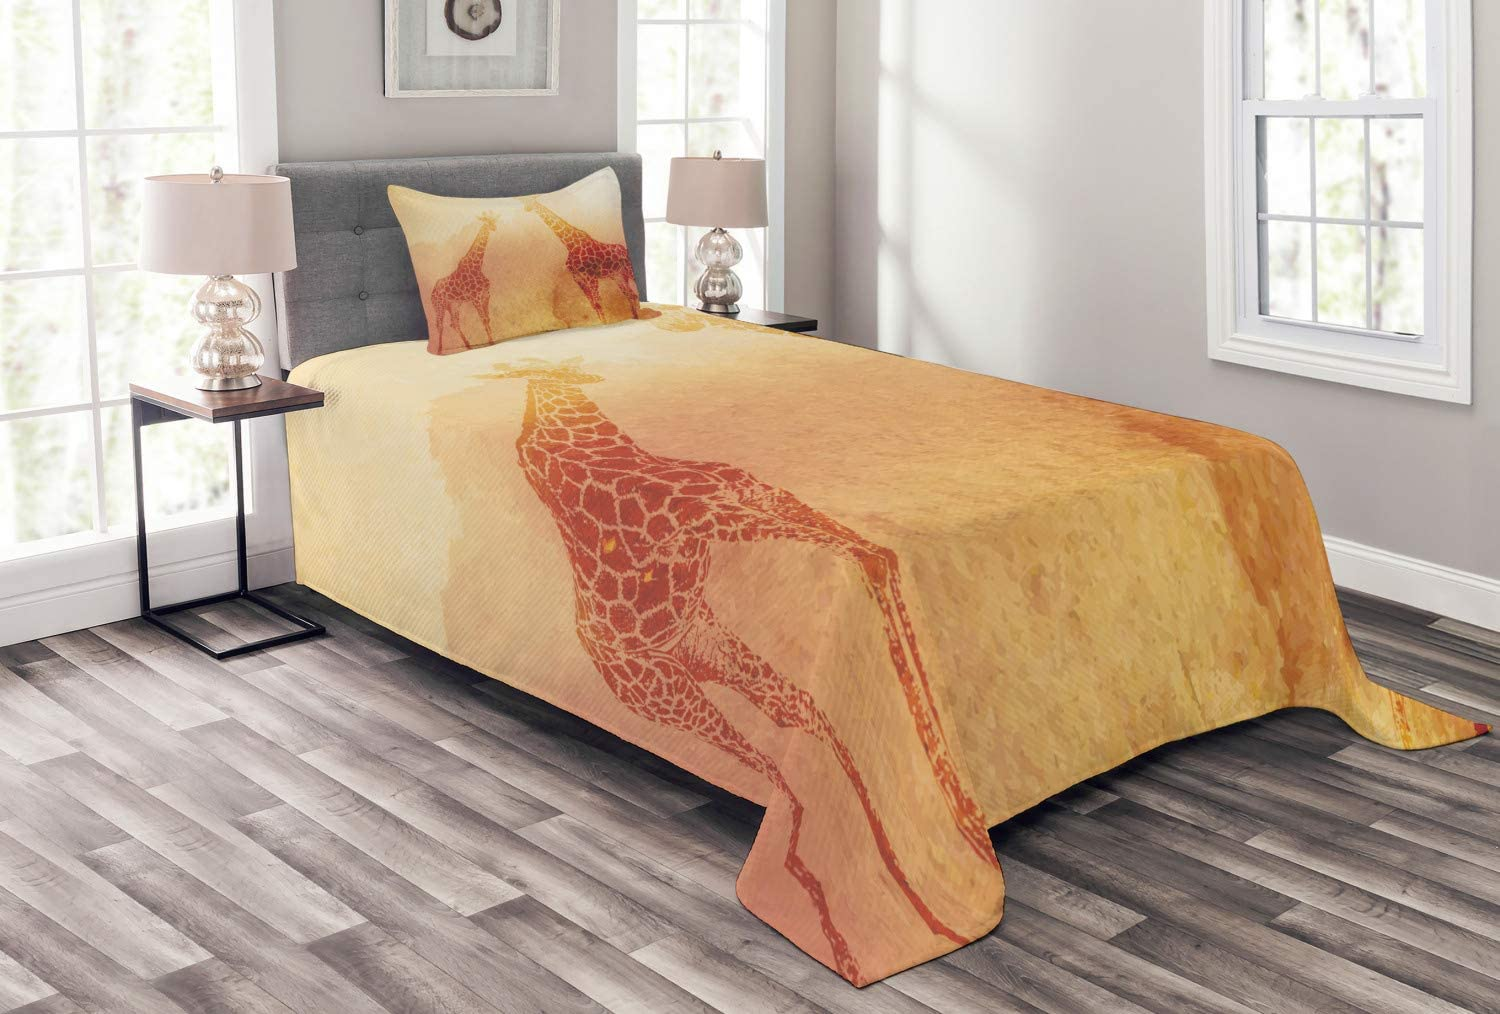 Ambesonne Safari Bedspread, Illustration Tropic Giraffes Tallest Neck Animal Mammal in Retro Vintage Print, Decorative Quilted 2 Piece Coverlet Set with Pillow Sham, Twin Size, Orange